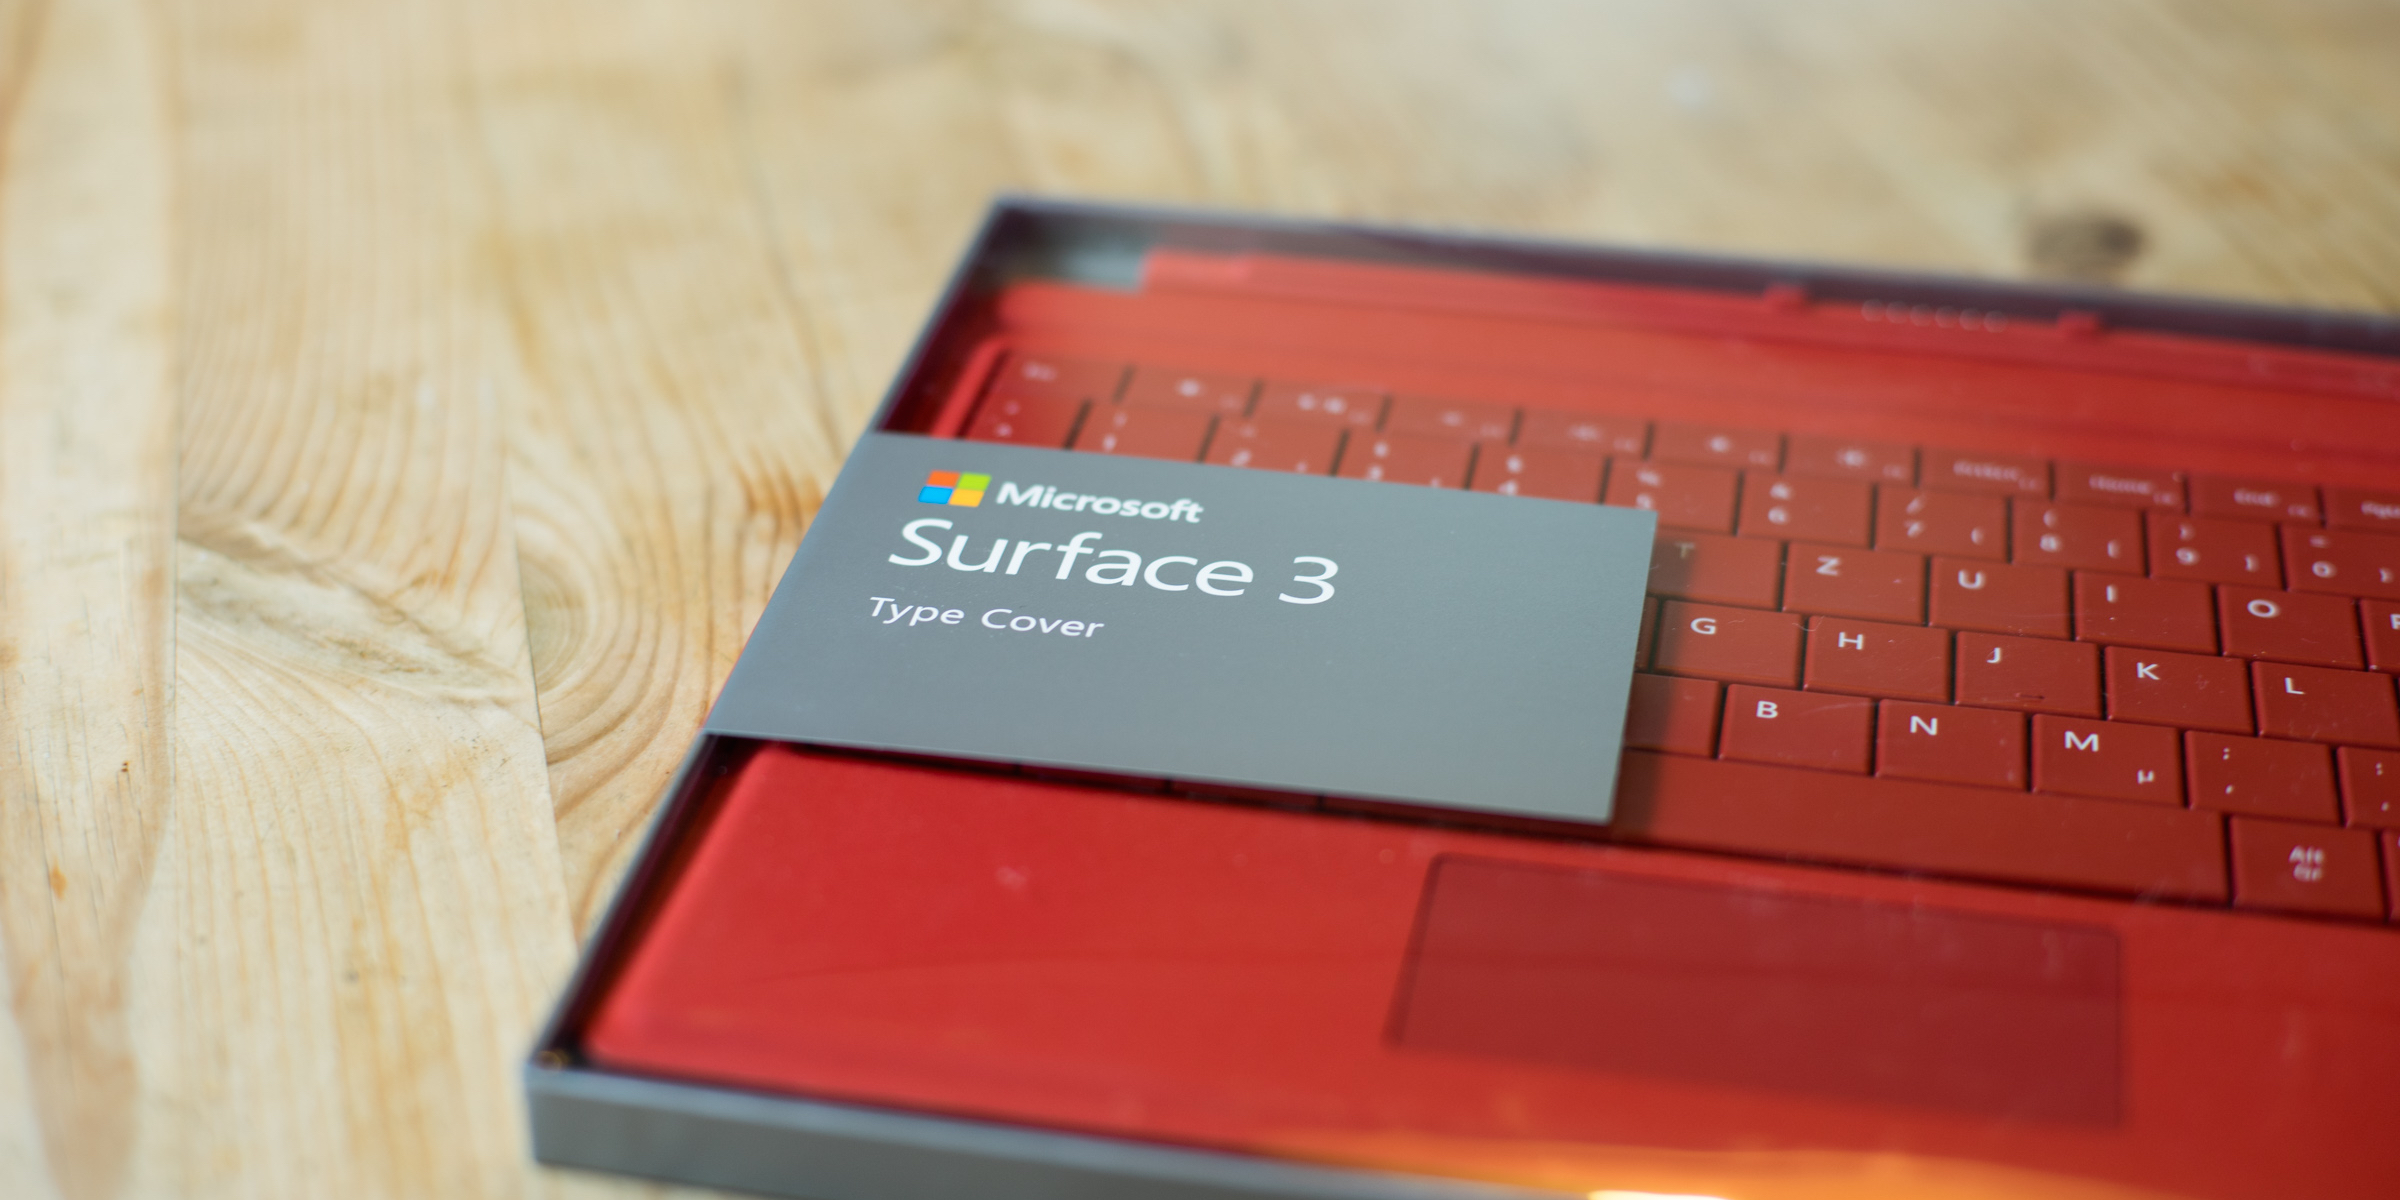 [Review] One week with the Surface 3 … I love it!